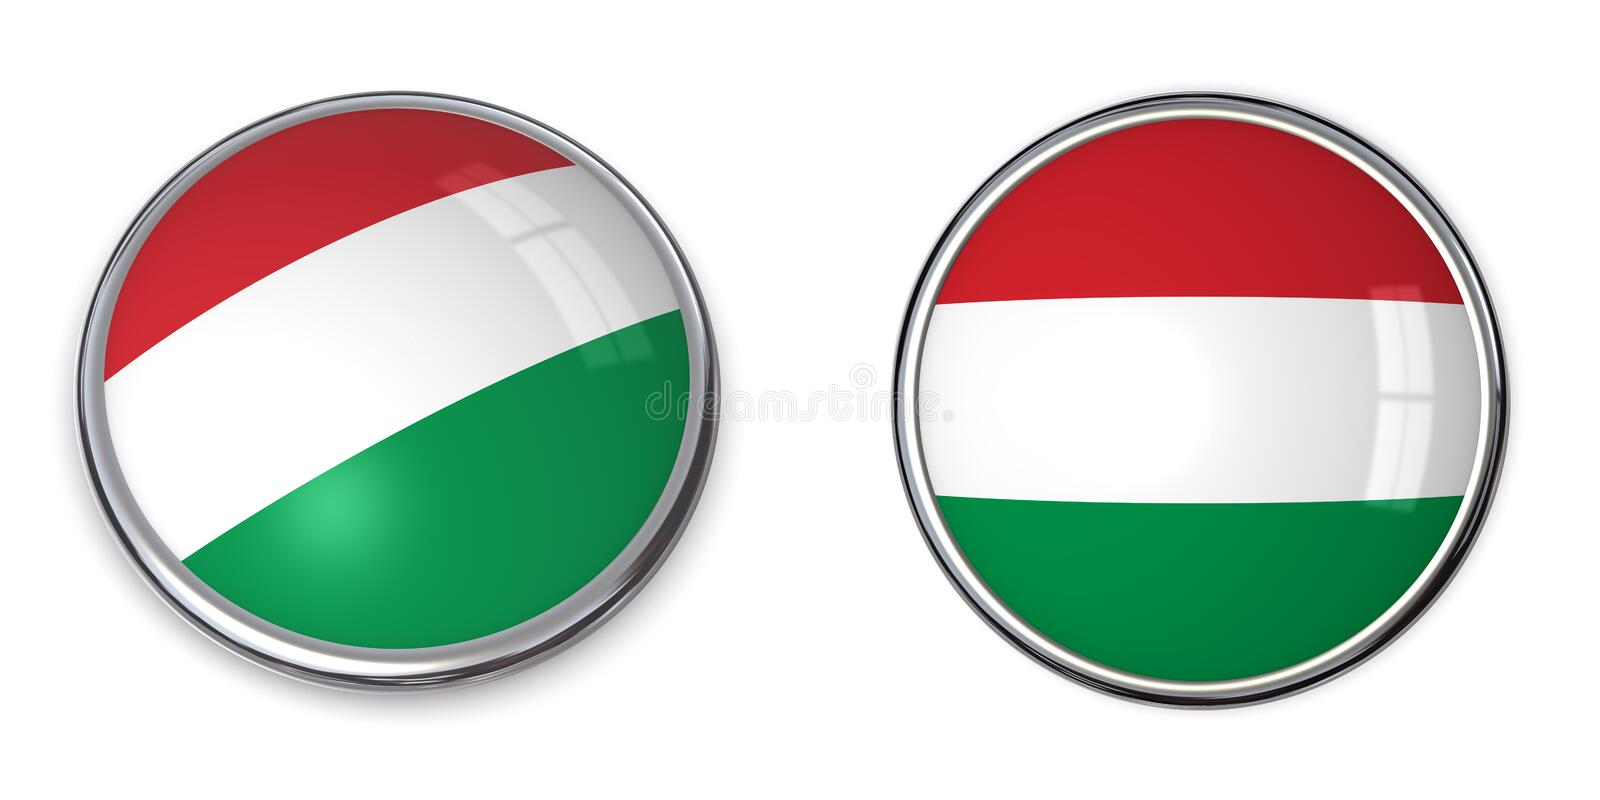 Banner Button Hungary Royalty Free Stock Photography